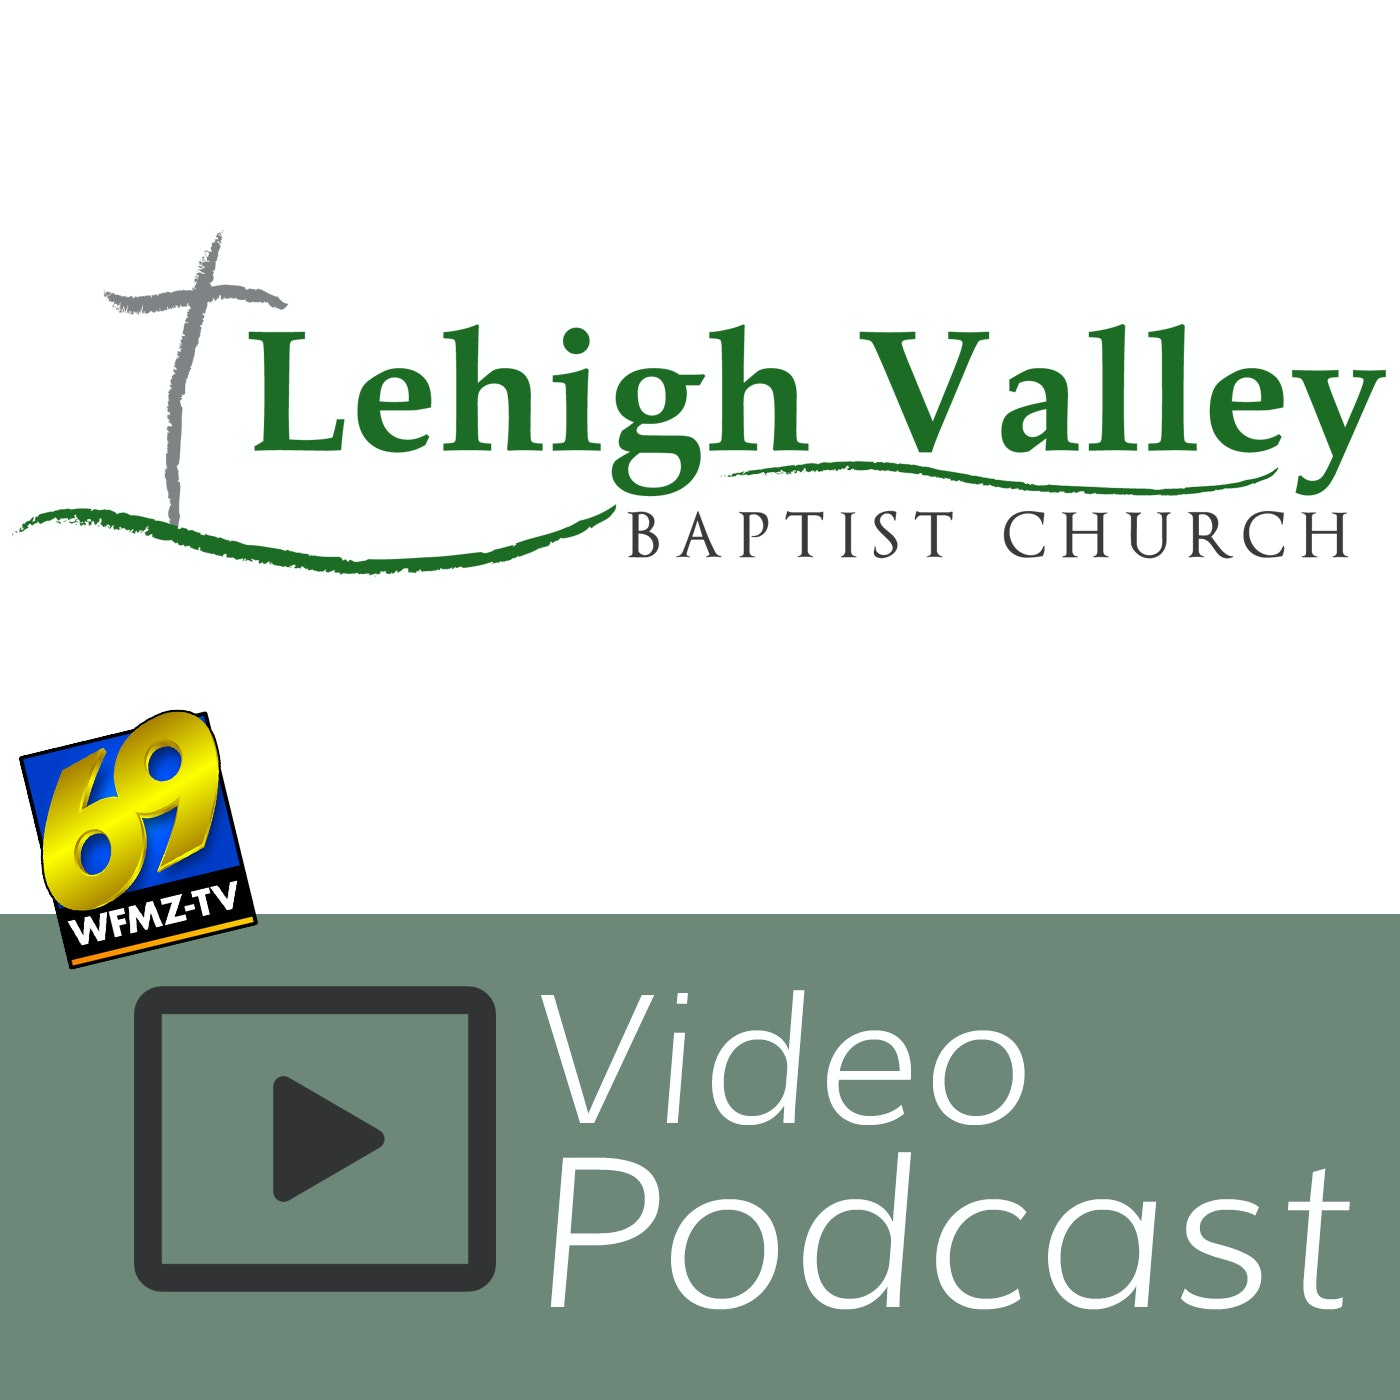 TV Ministry of Lehigh Valley Baptist Church